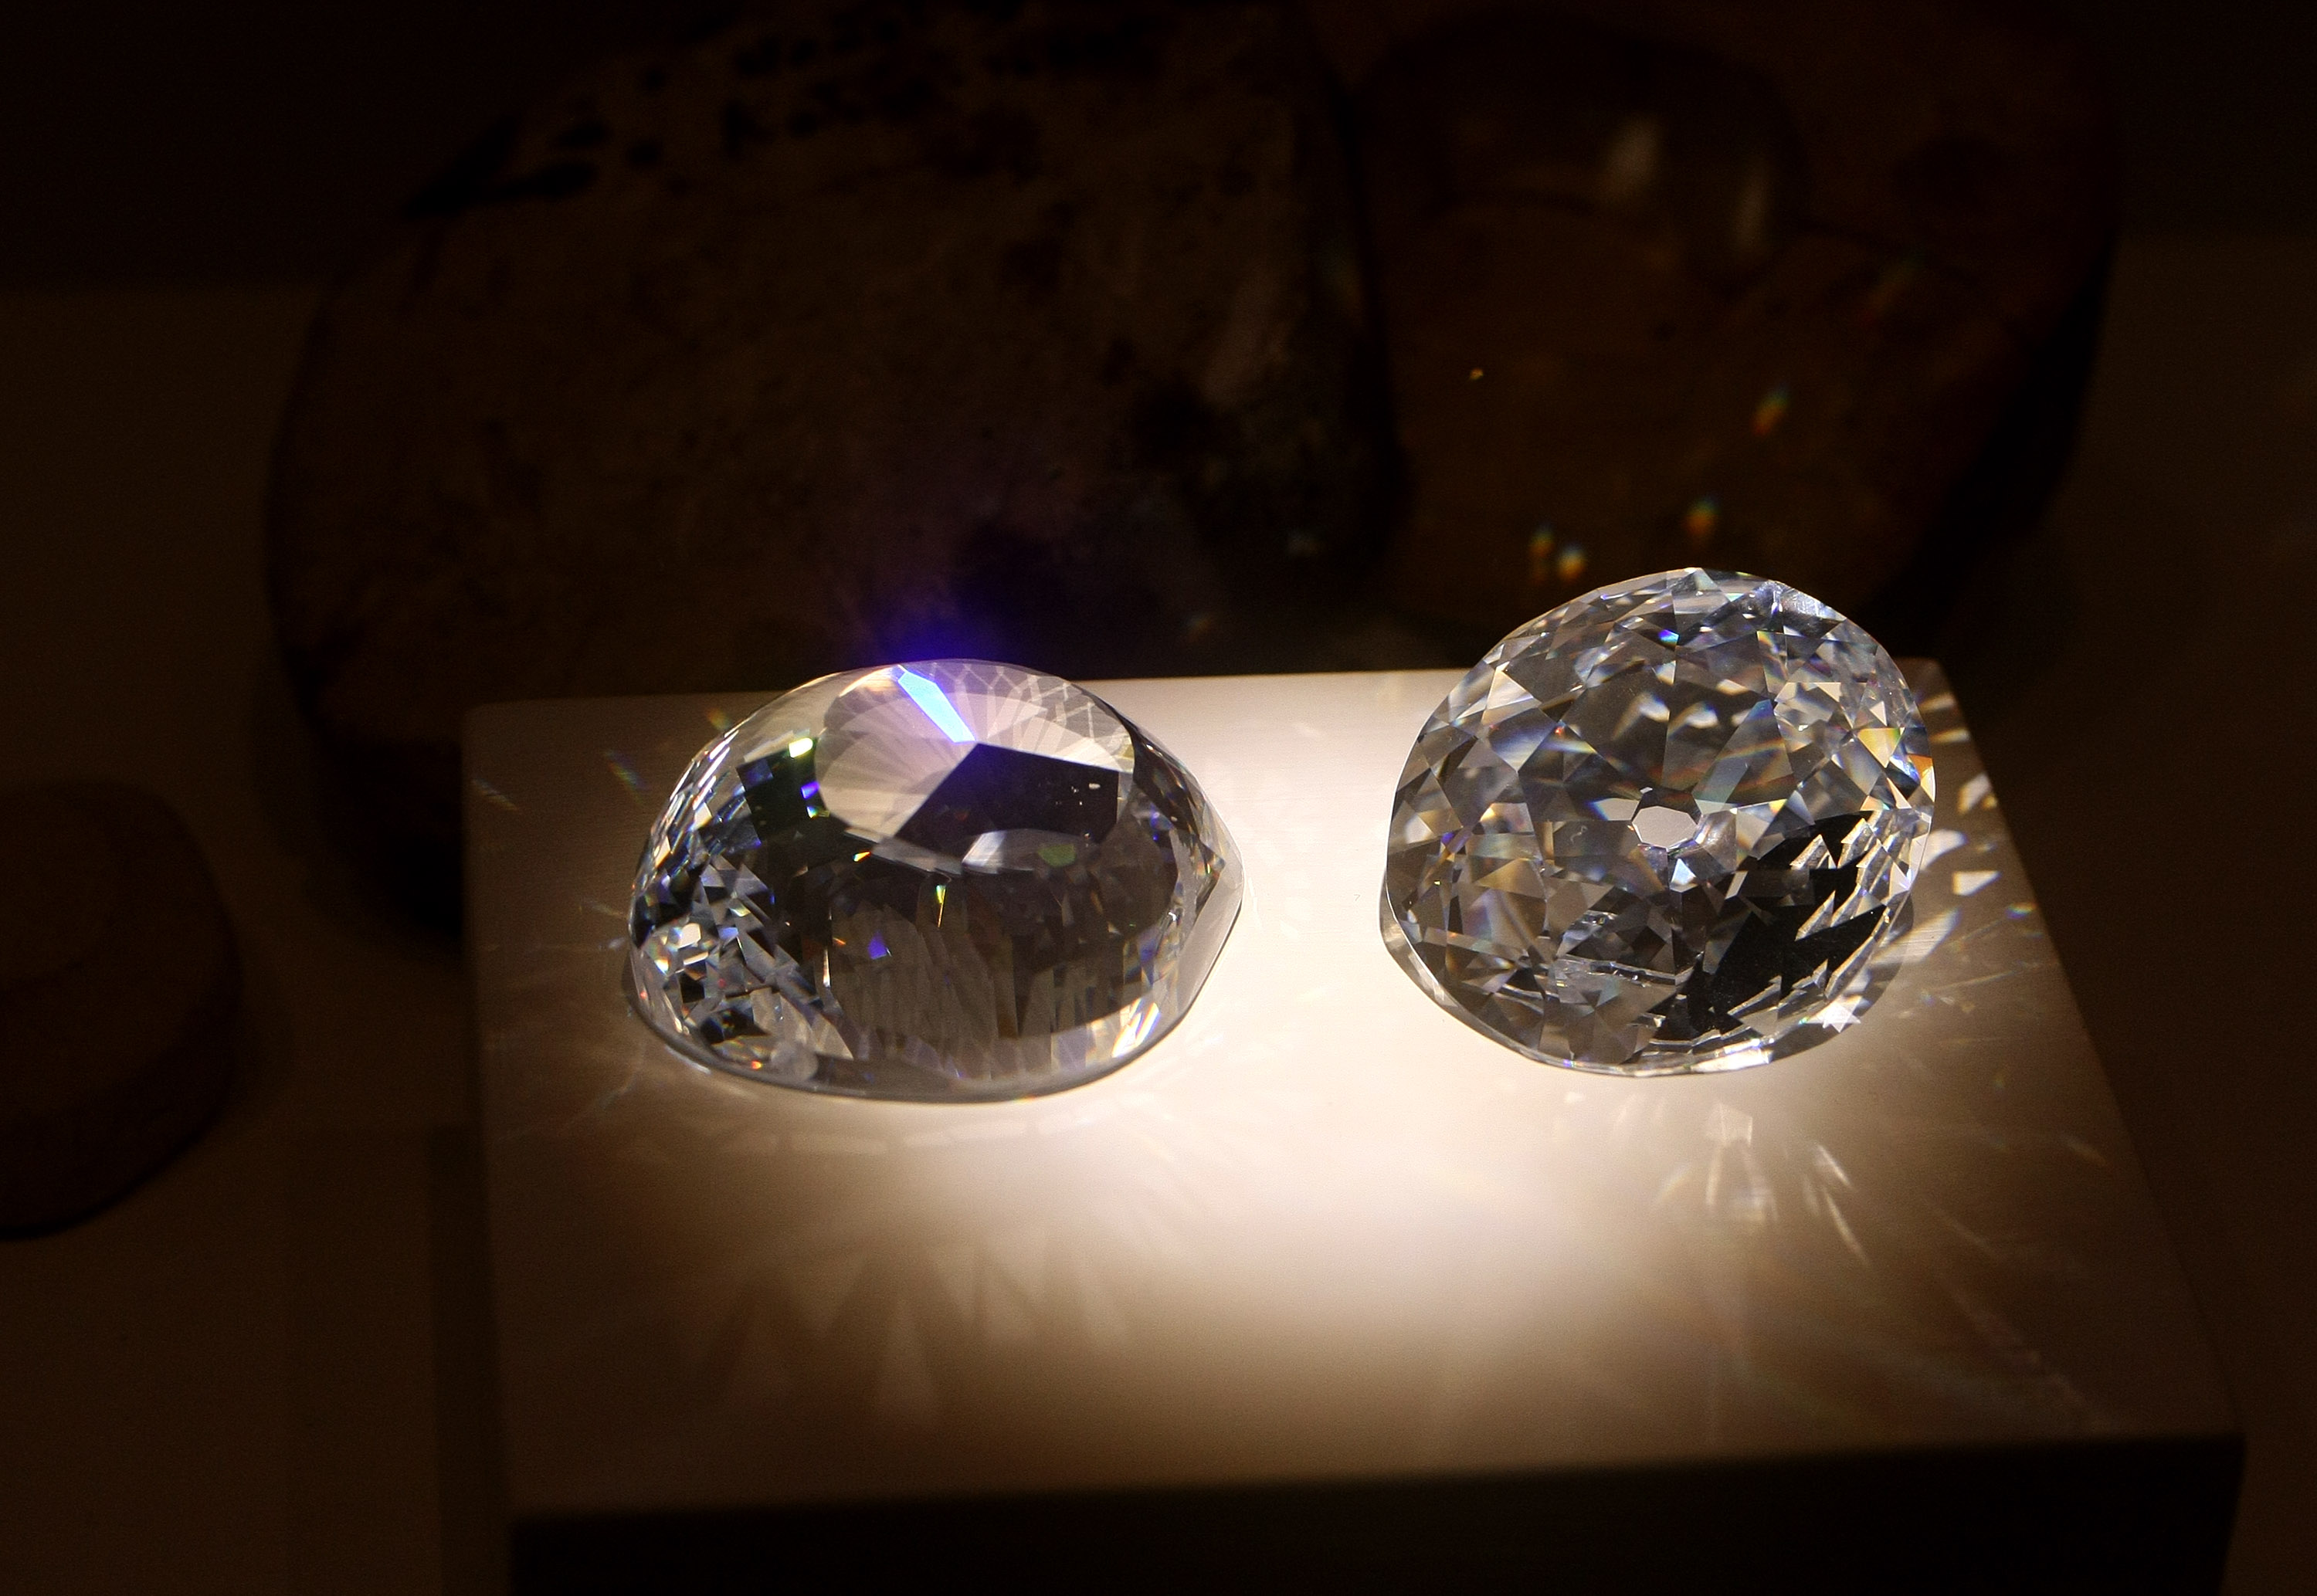 la sotheby the lesedi courtesy index blog at auction dreams african photo diamond of rona s made diamonds are